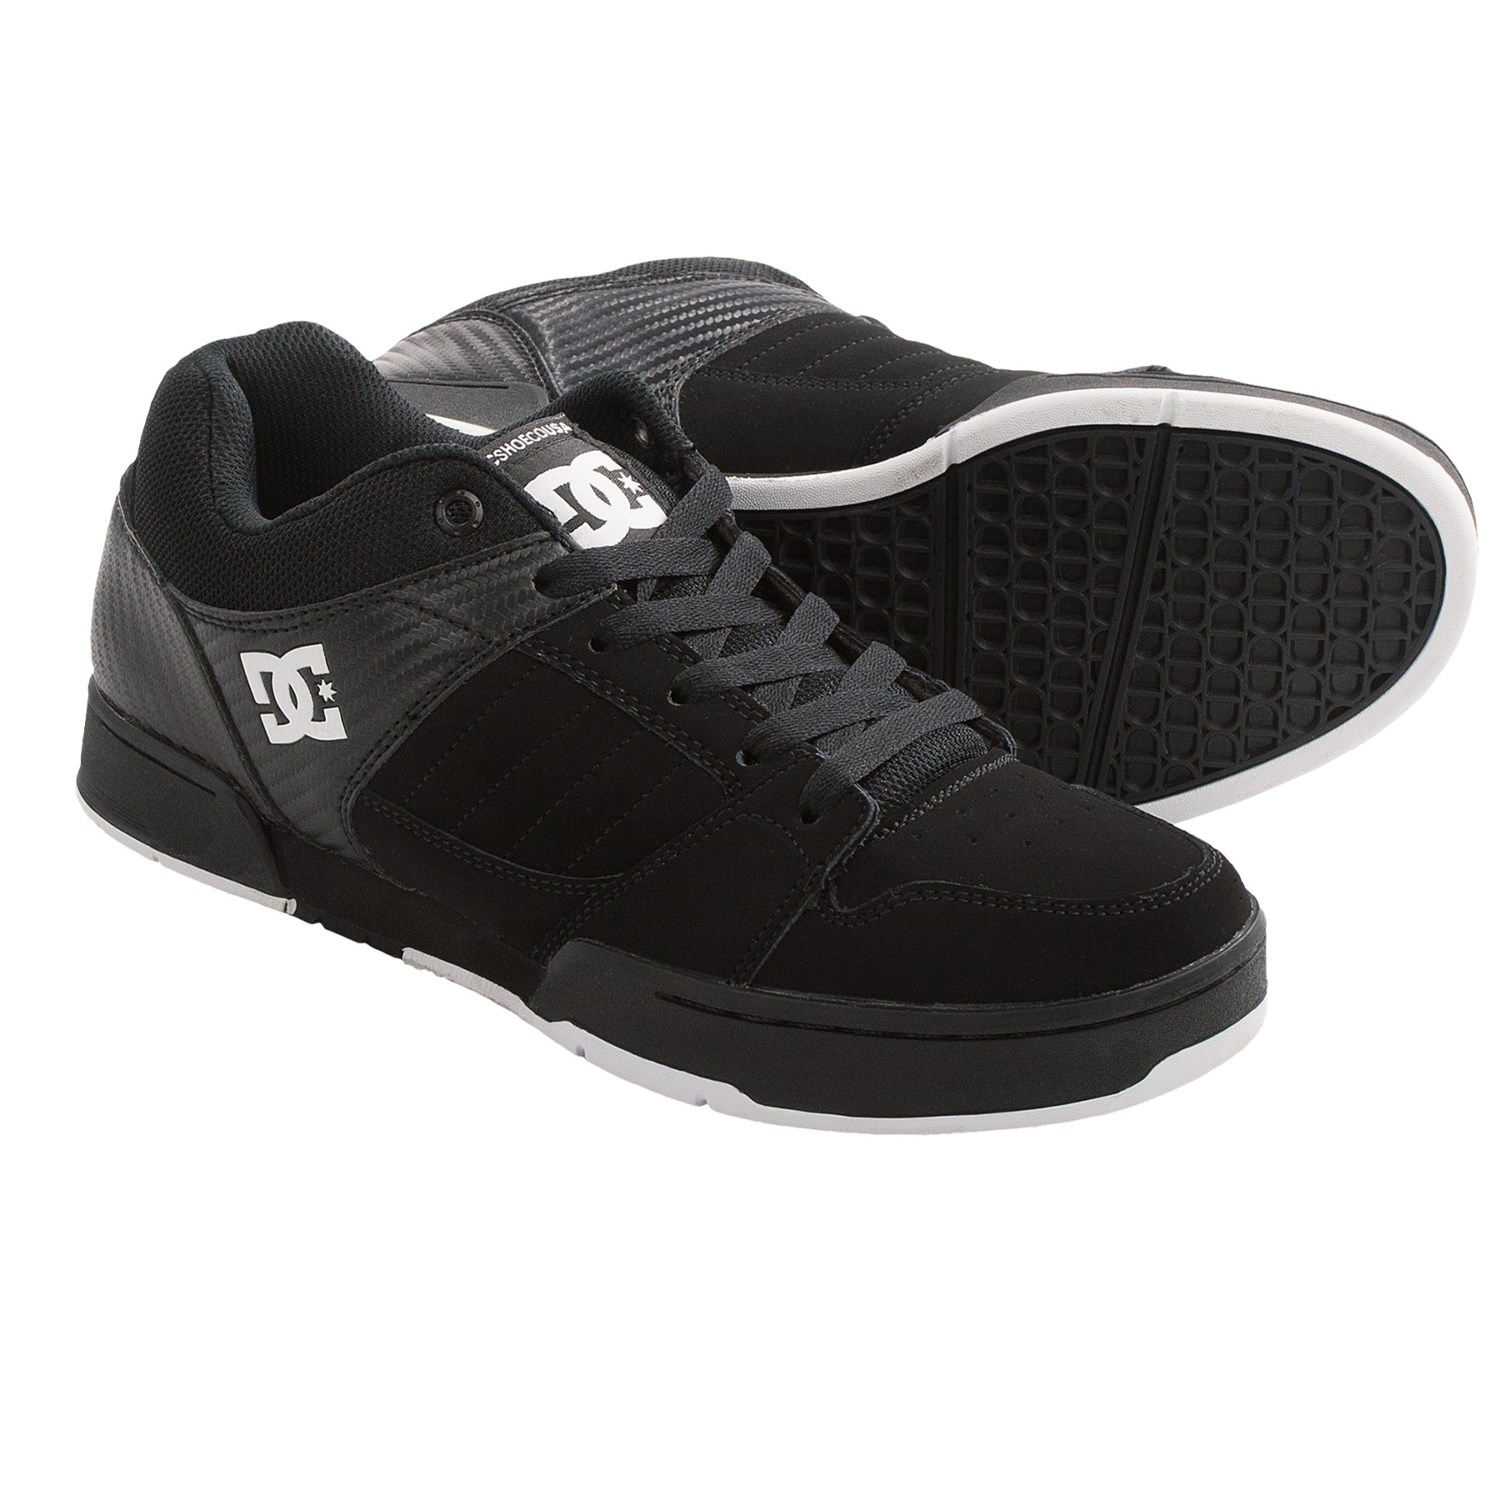 Is Dc Shoes A Good Brand